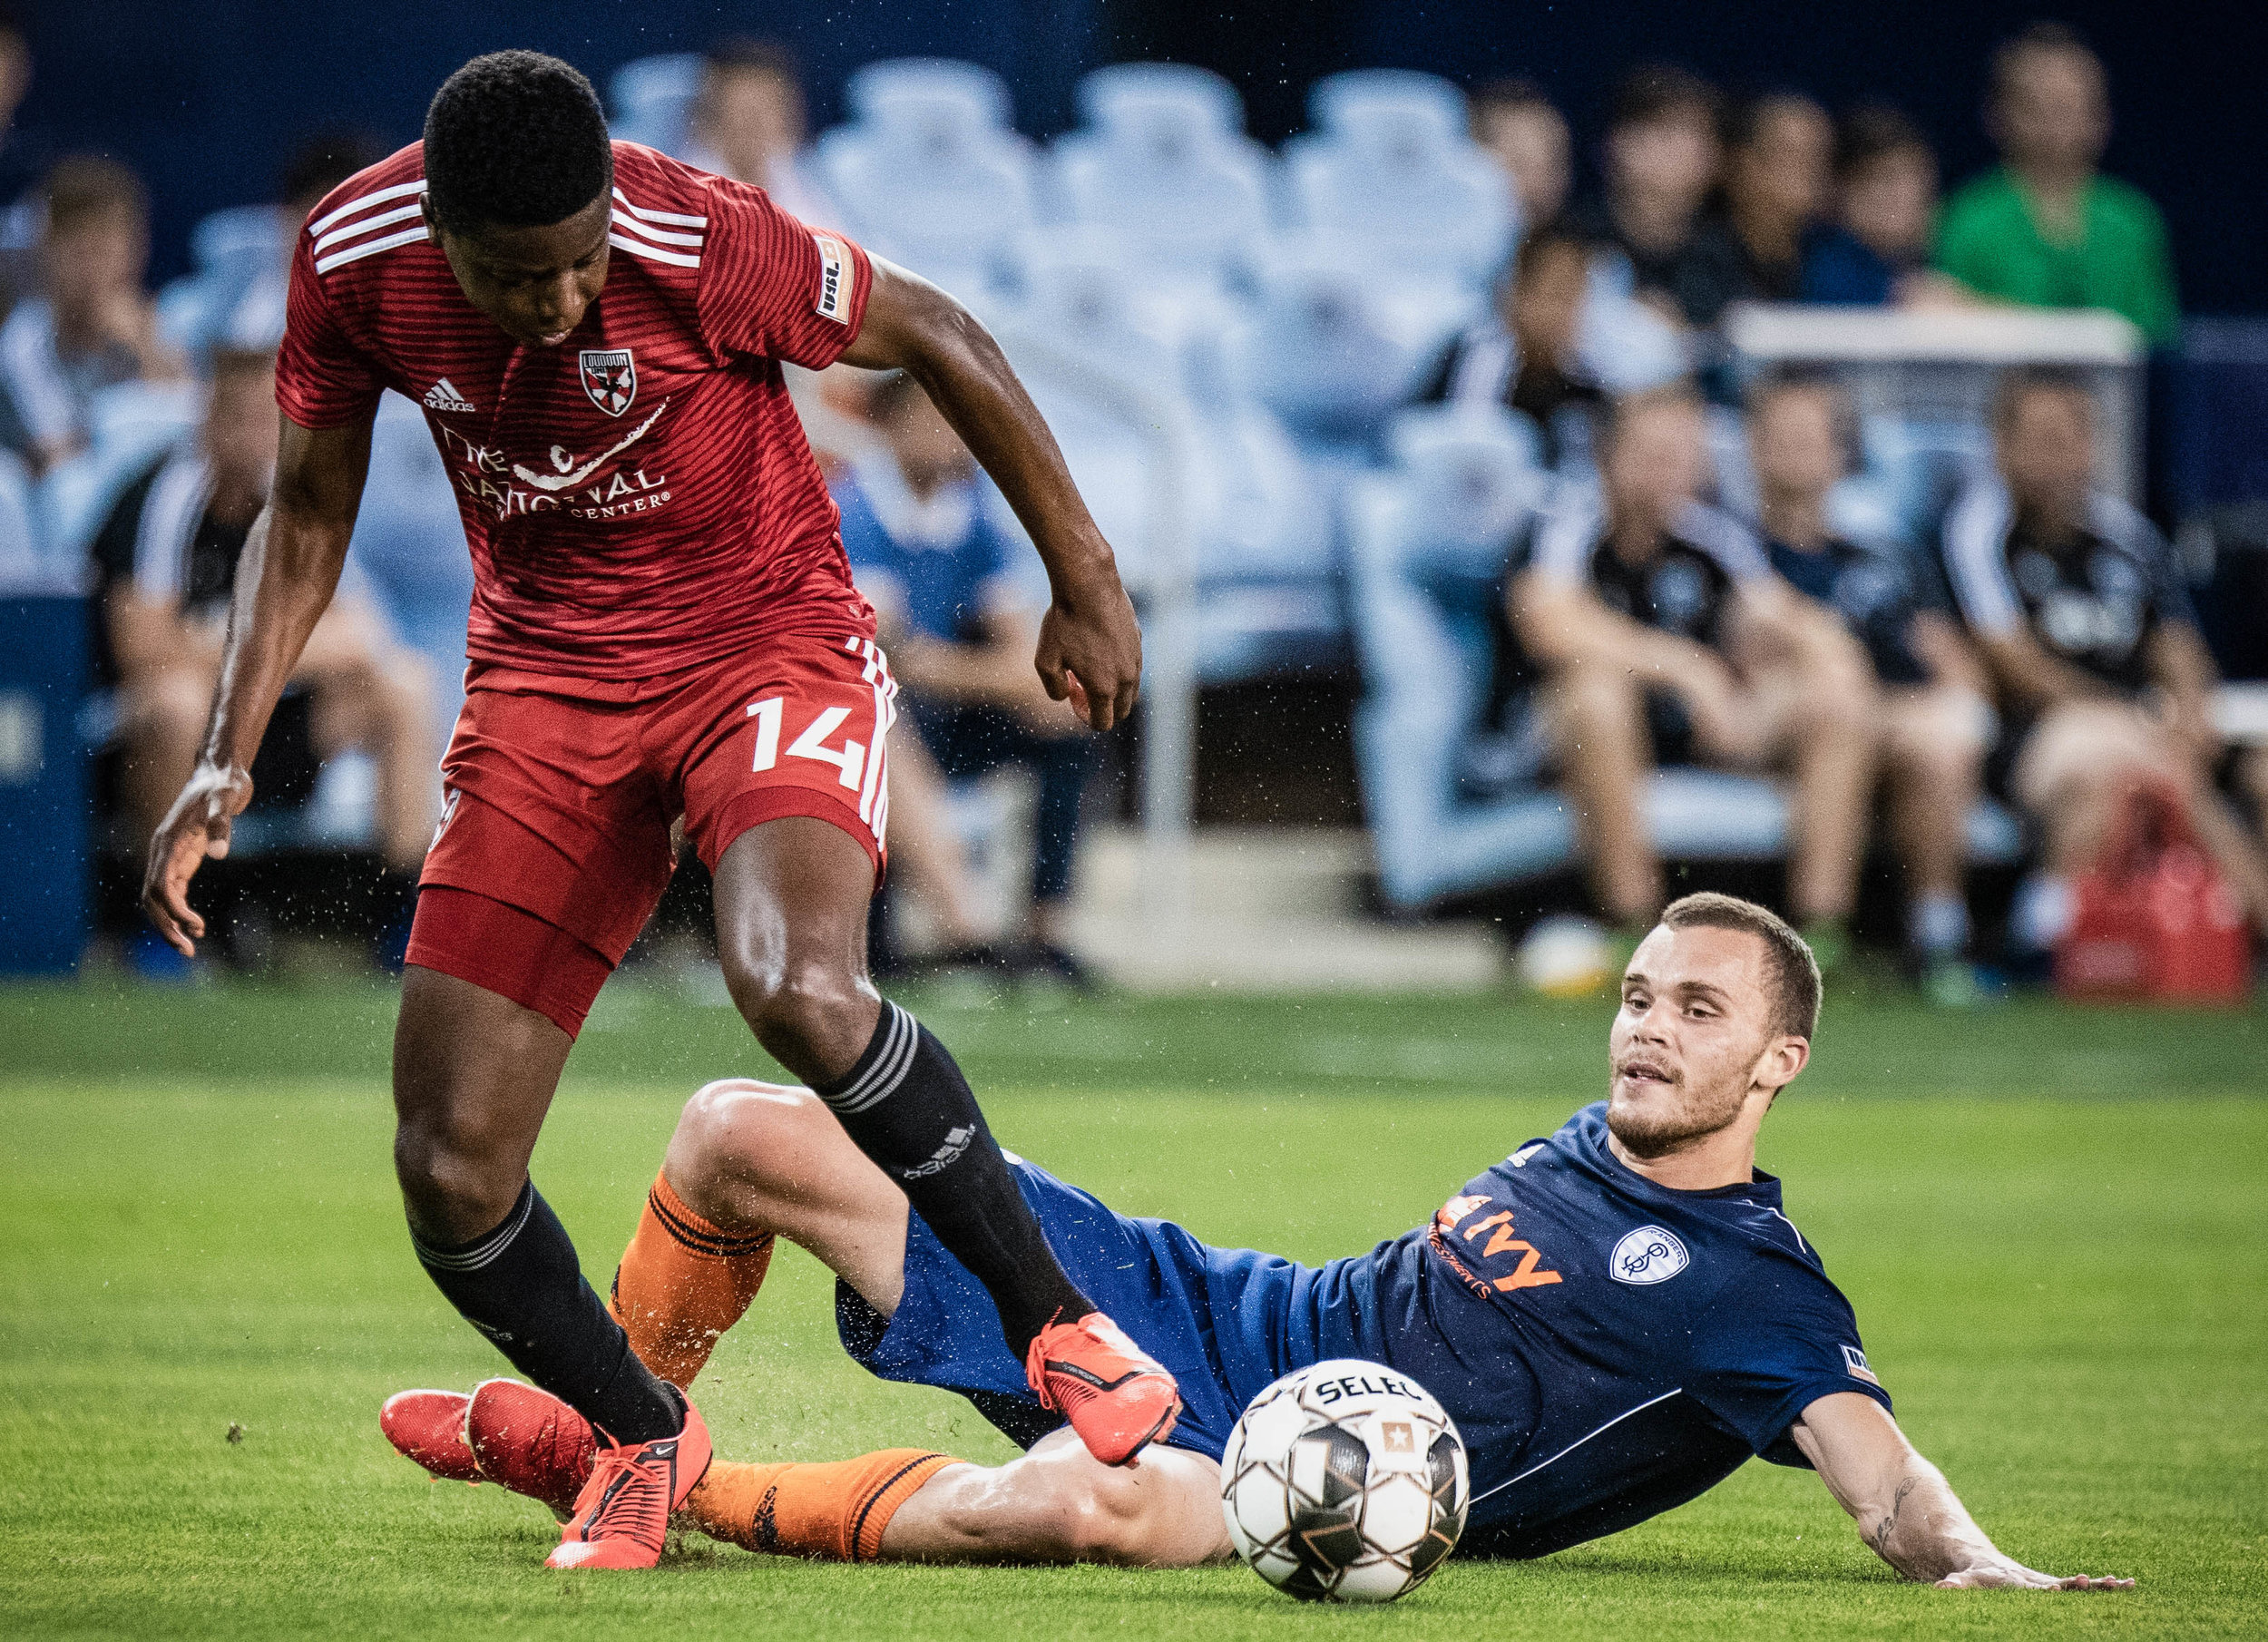 Forward, Ethan Vanacore-Decker gets tripped by Bryang Kayo (14) during the Swope Park Rangers vs. Loudoun United FC match on Wednesday, June 5, 2019 at Children's Mercy Park, Kansas City, Kansas. | Photo by: Noah Riffe